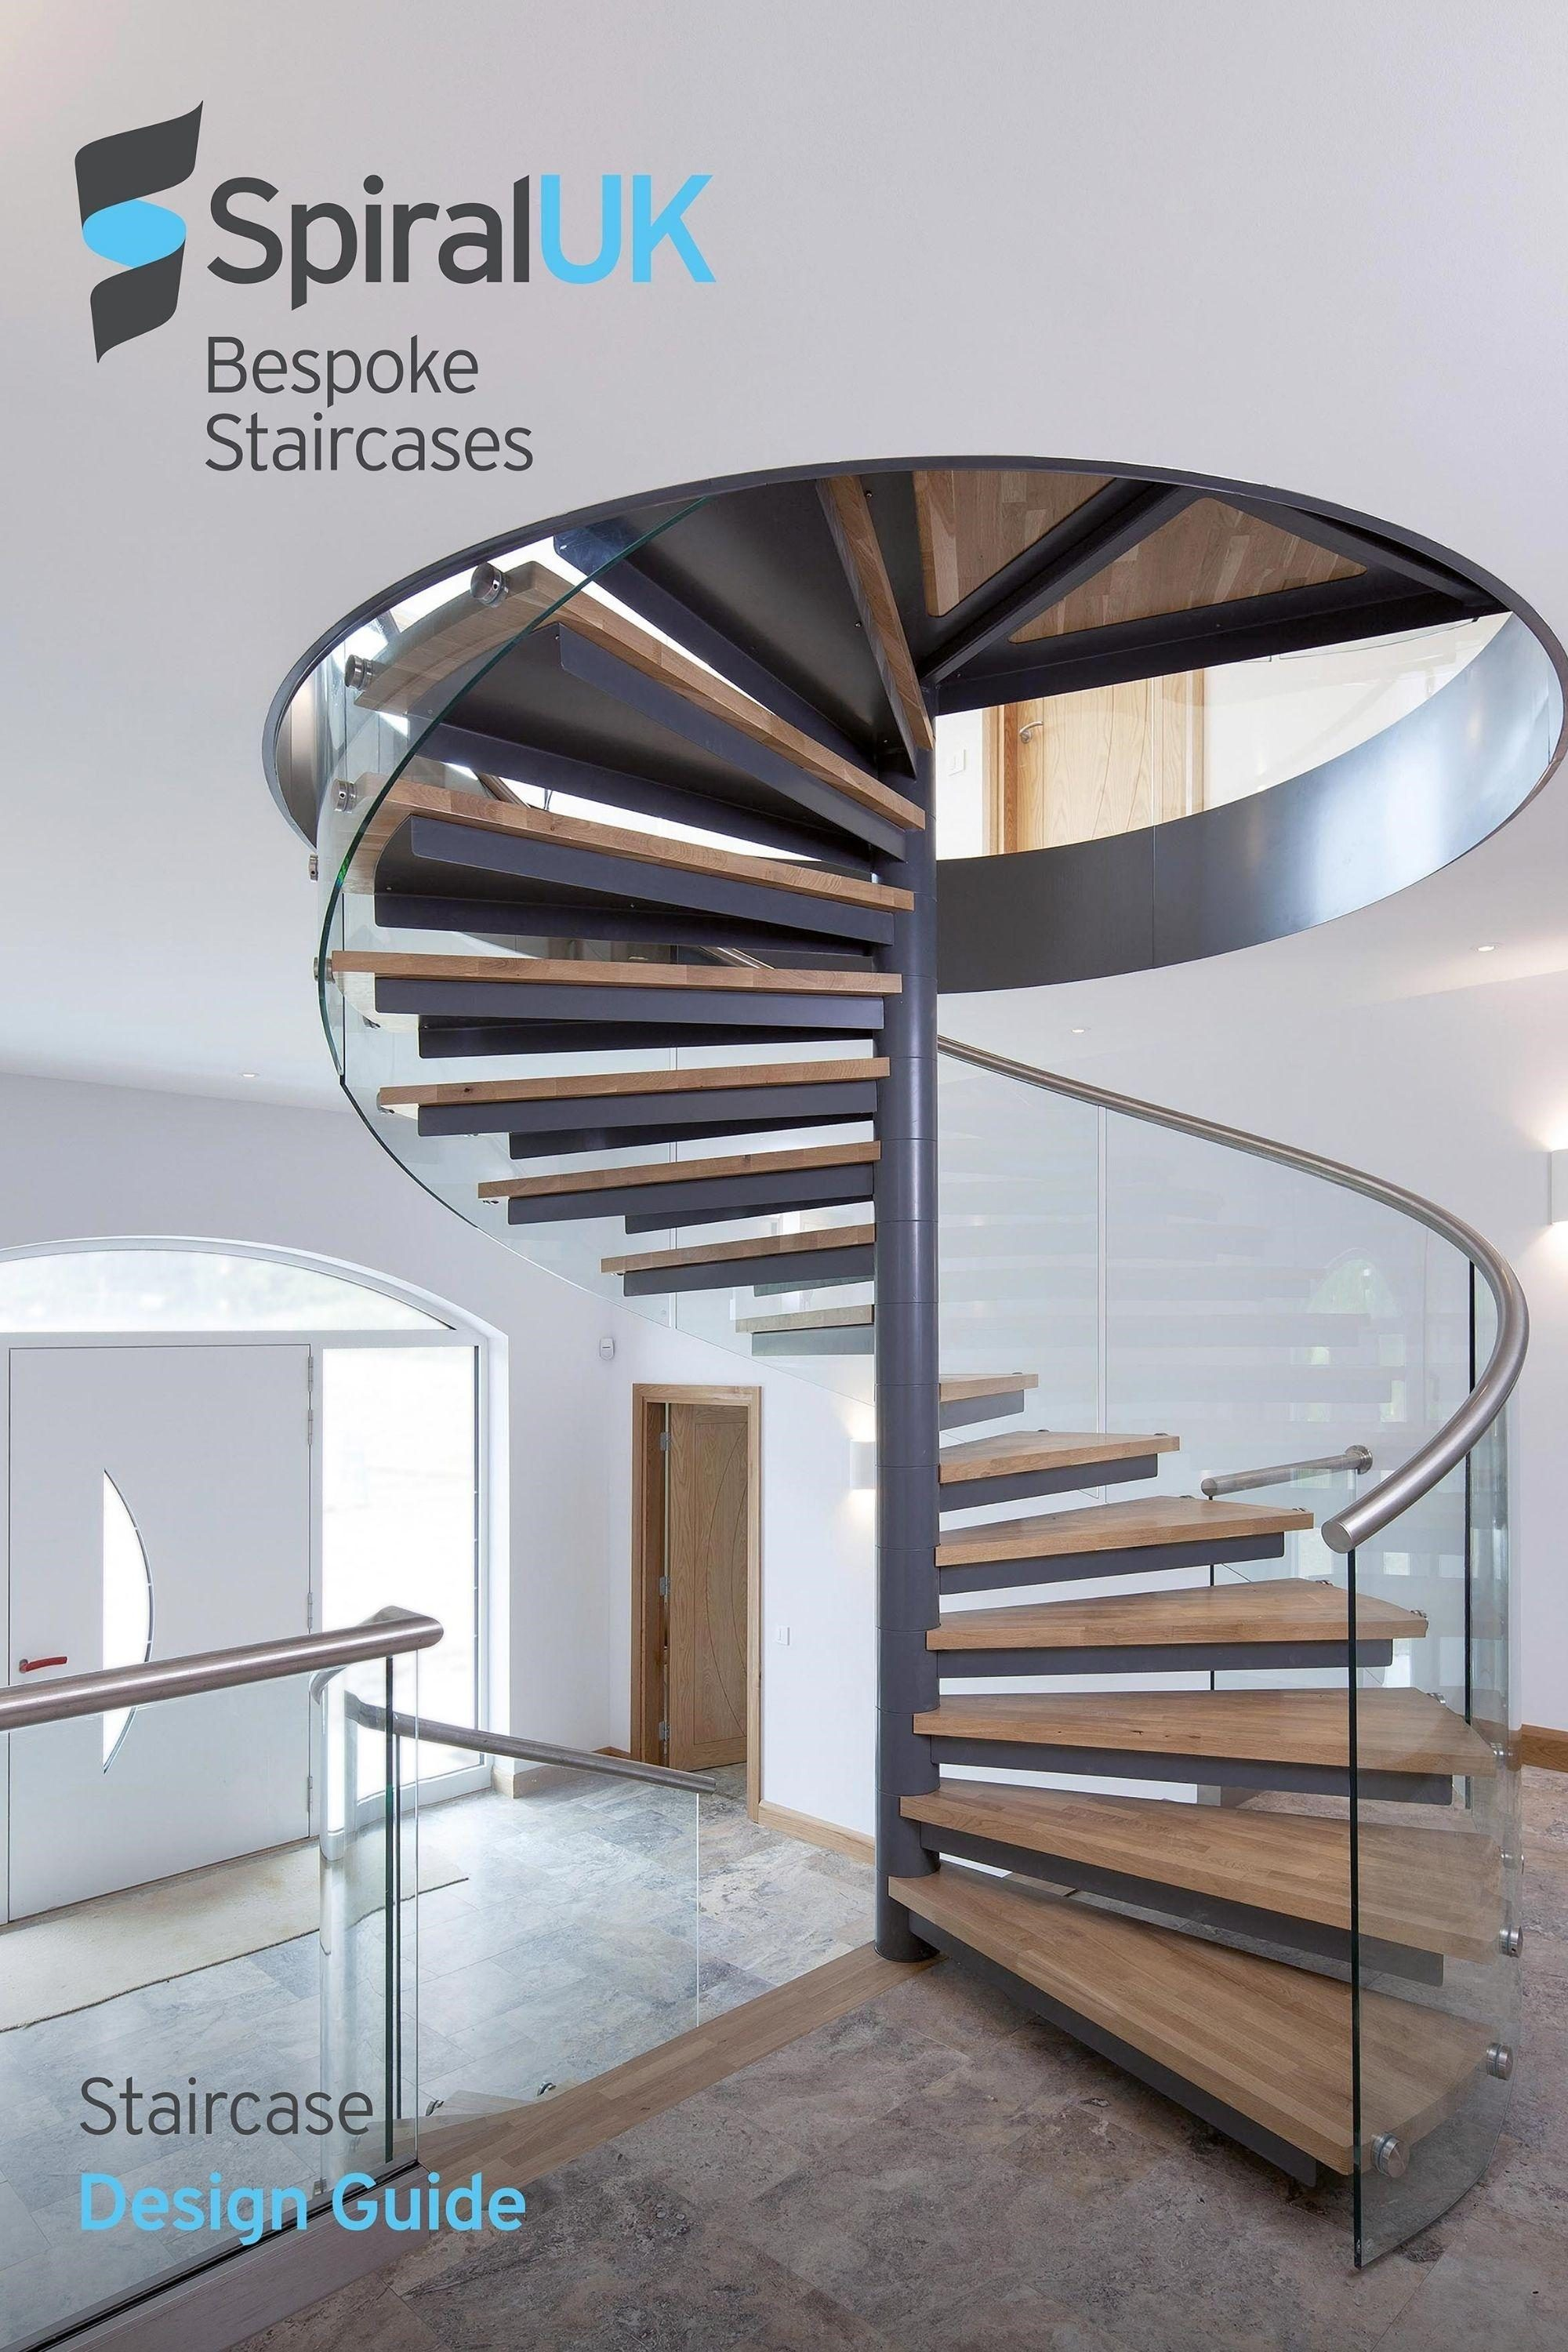 staircase design guide cover image of spiral stairs